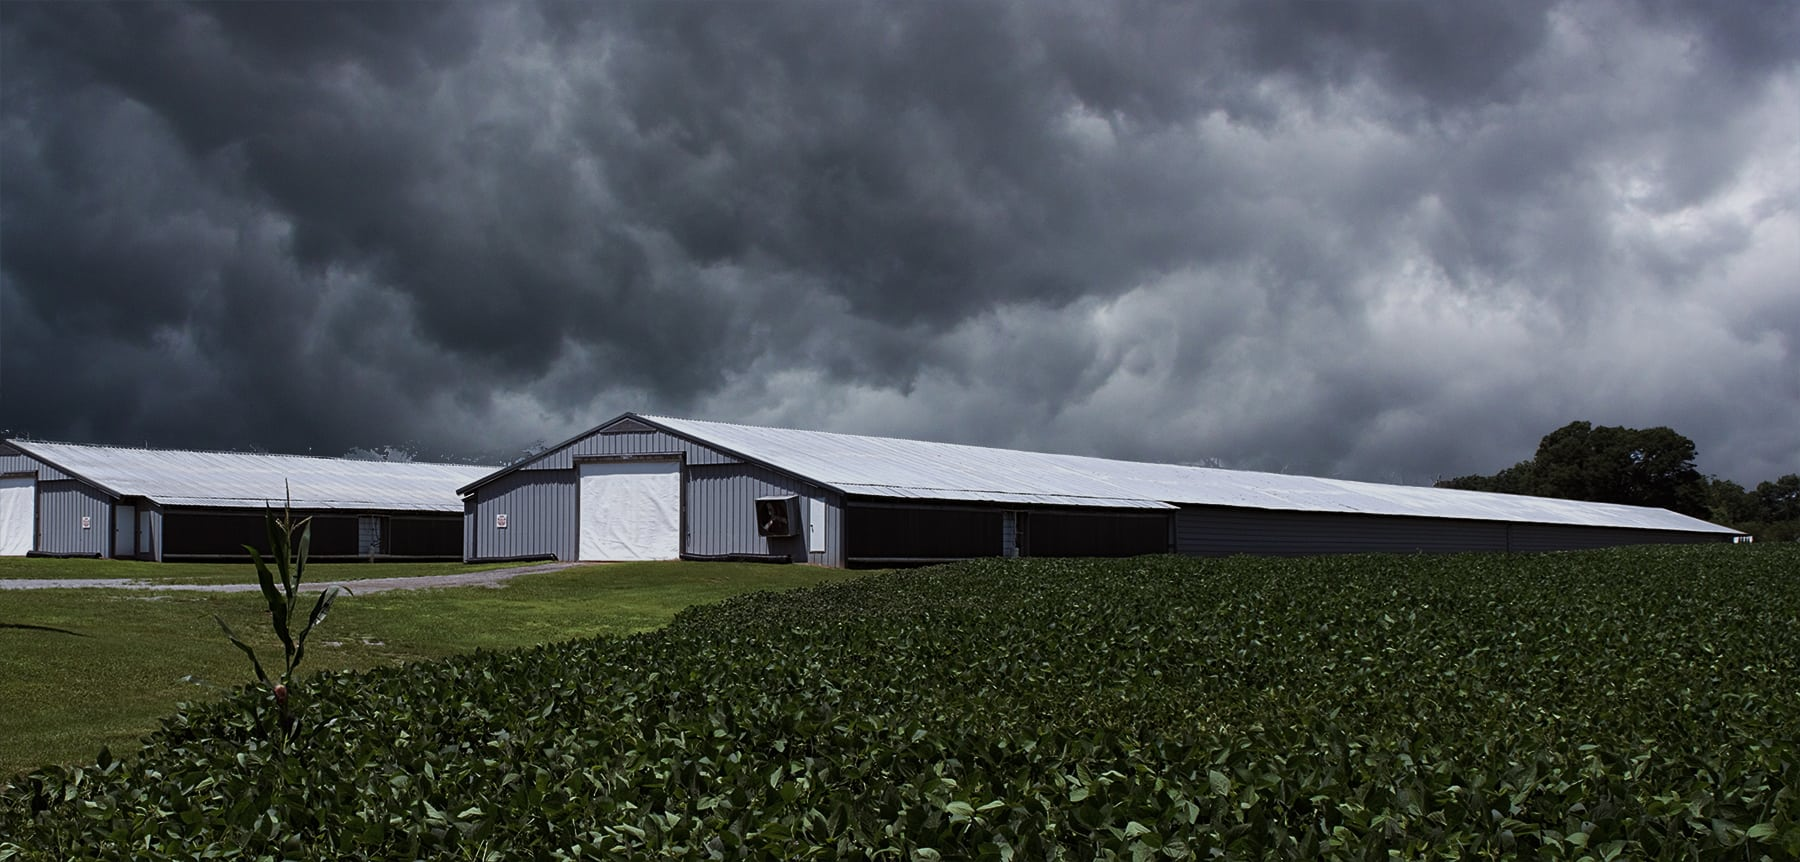 Chicken houses during a storm.